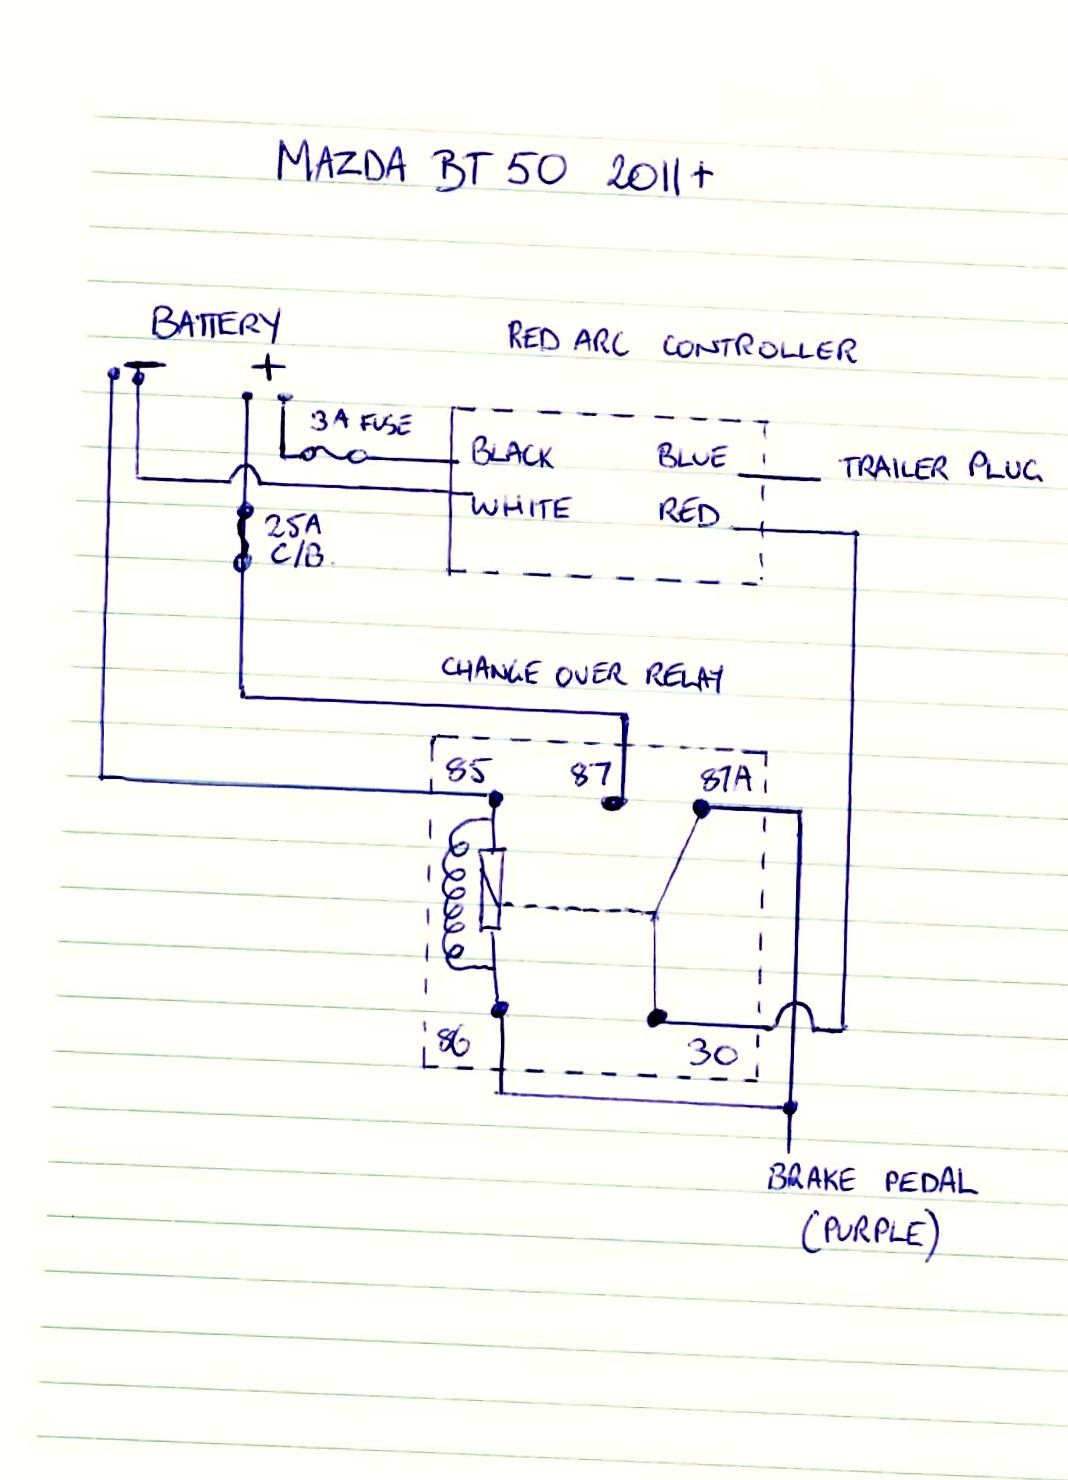 BT 50 Brake Controller Wiring Diagram | Discovery LR5 4x4 Project | Diagram, Floor plans, Ideas